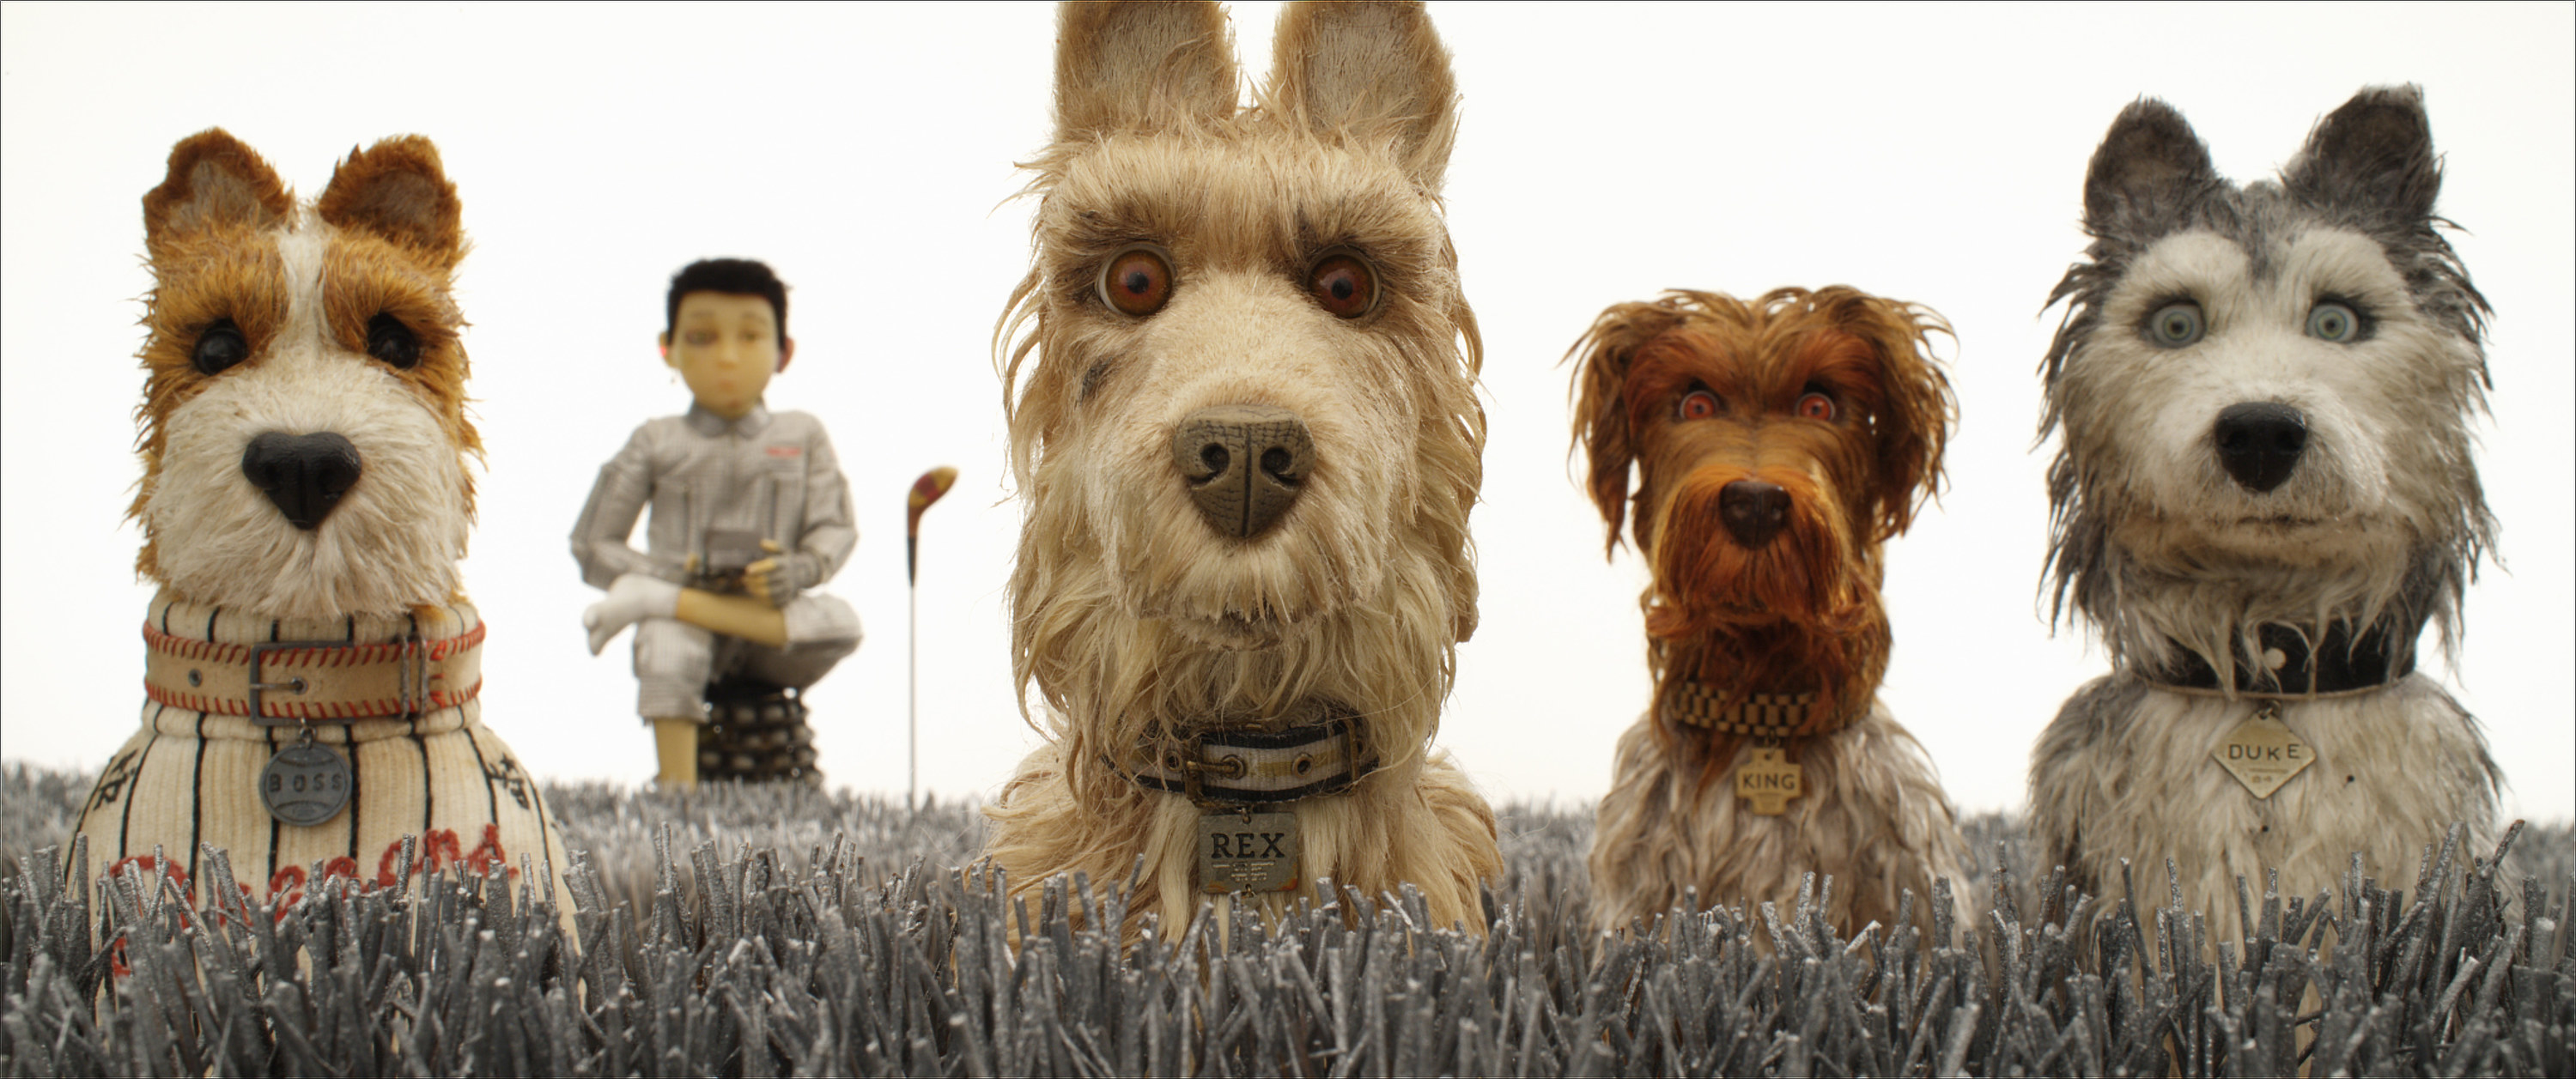 A group of dogs look at the camera